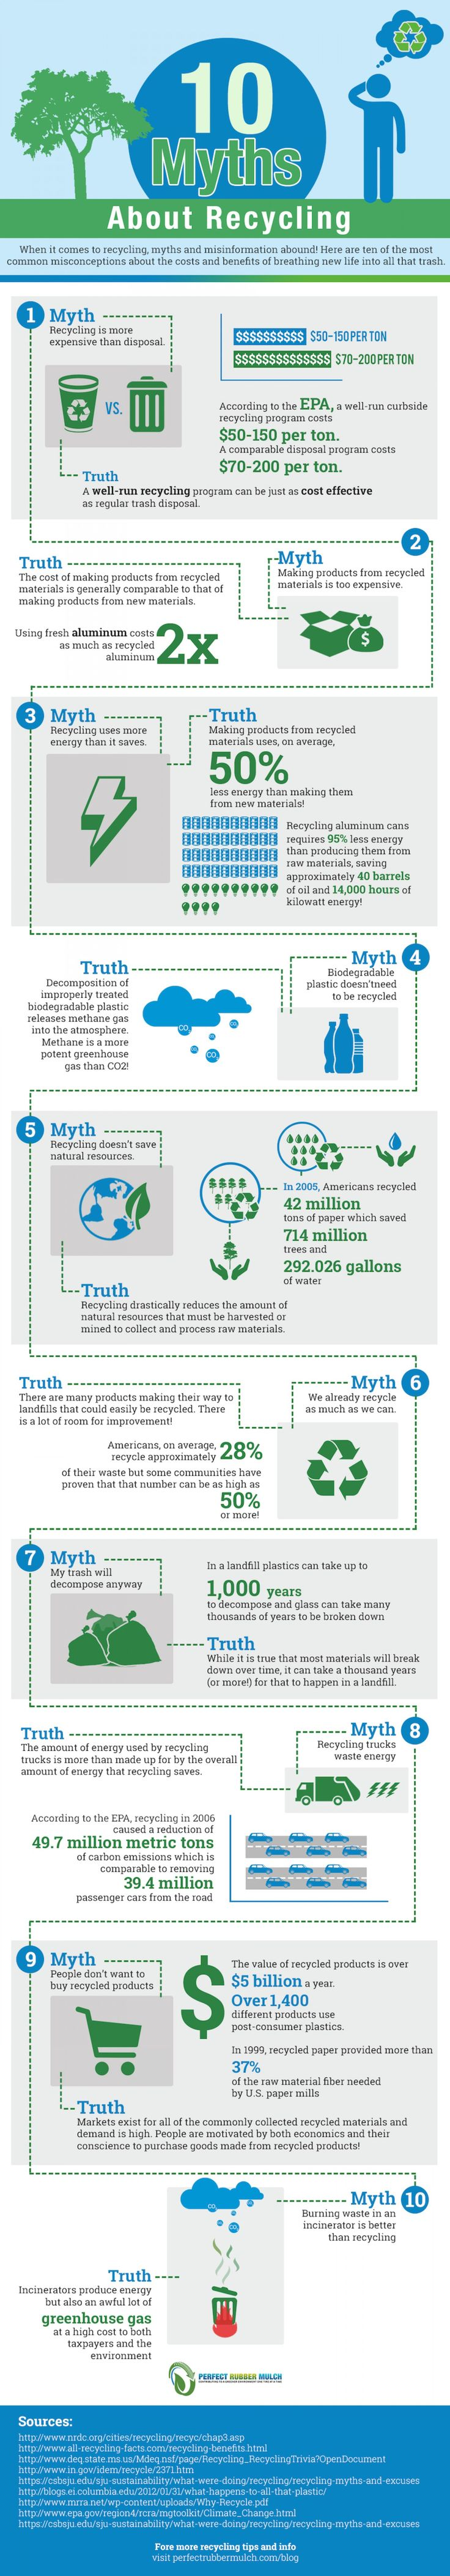 10 Myths About Recycling Infographic